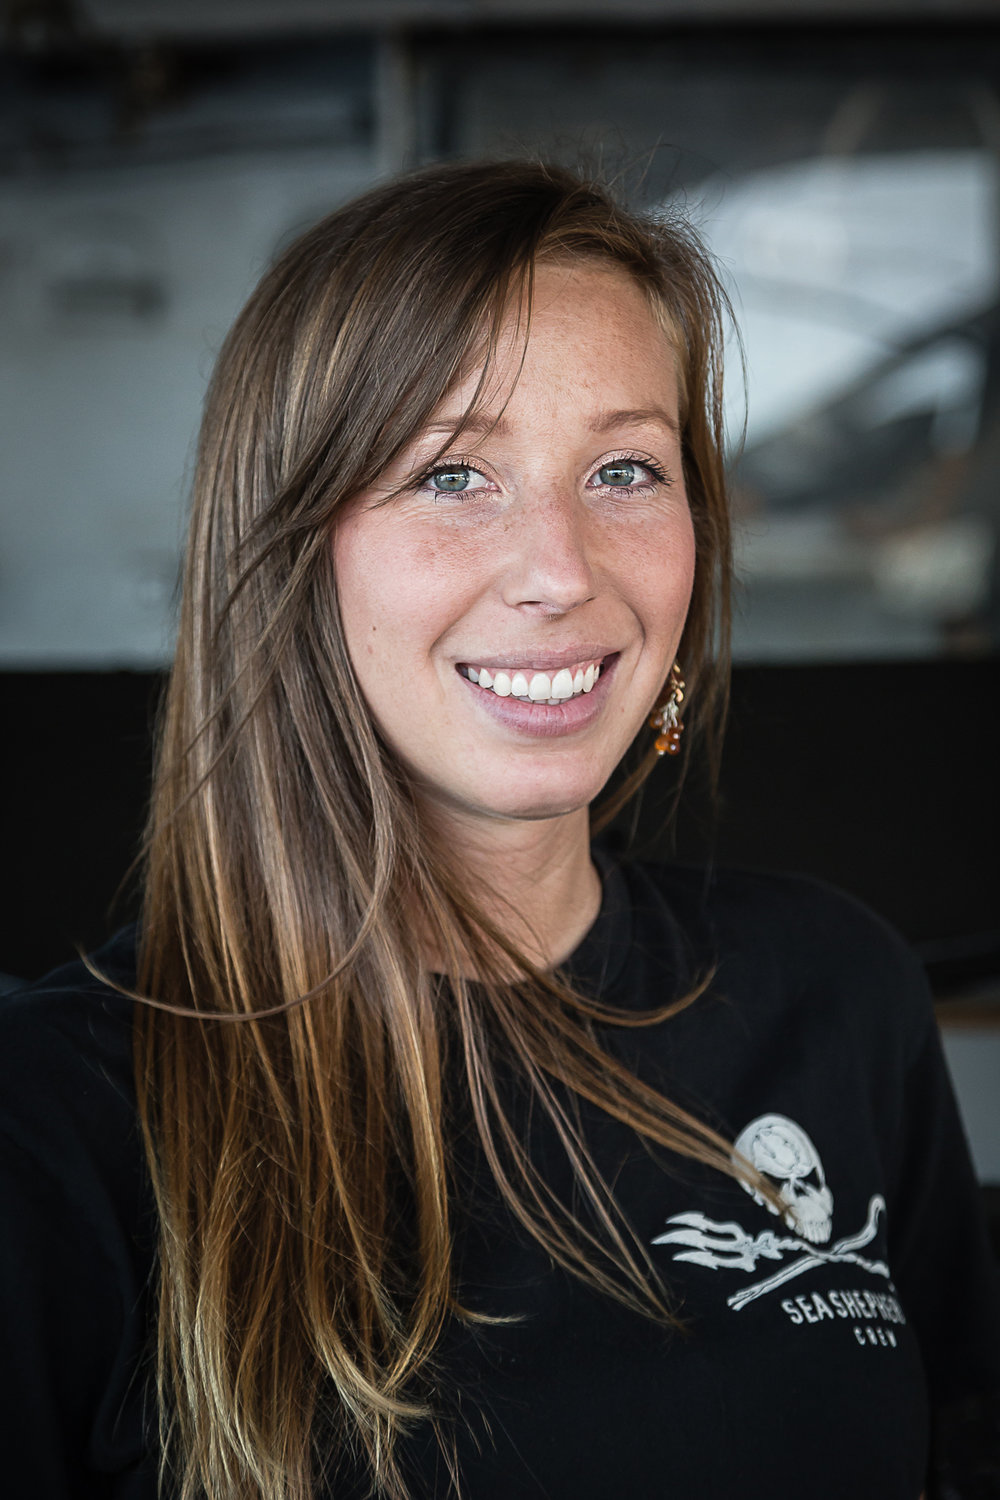 Katie's Sea Shepherd crew mug shot